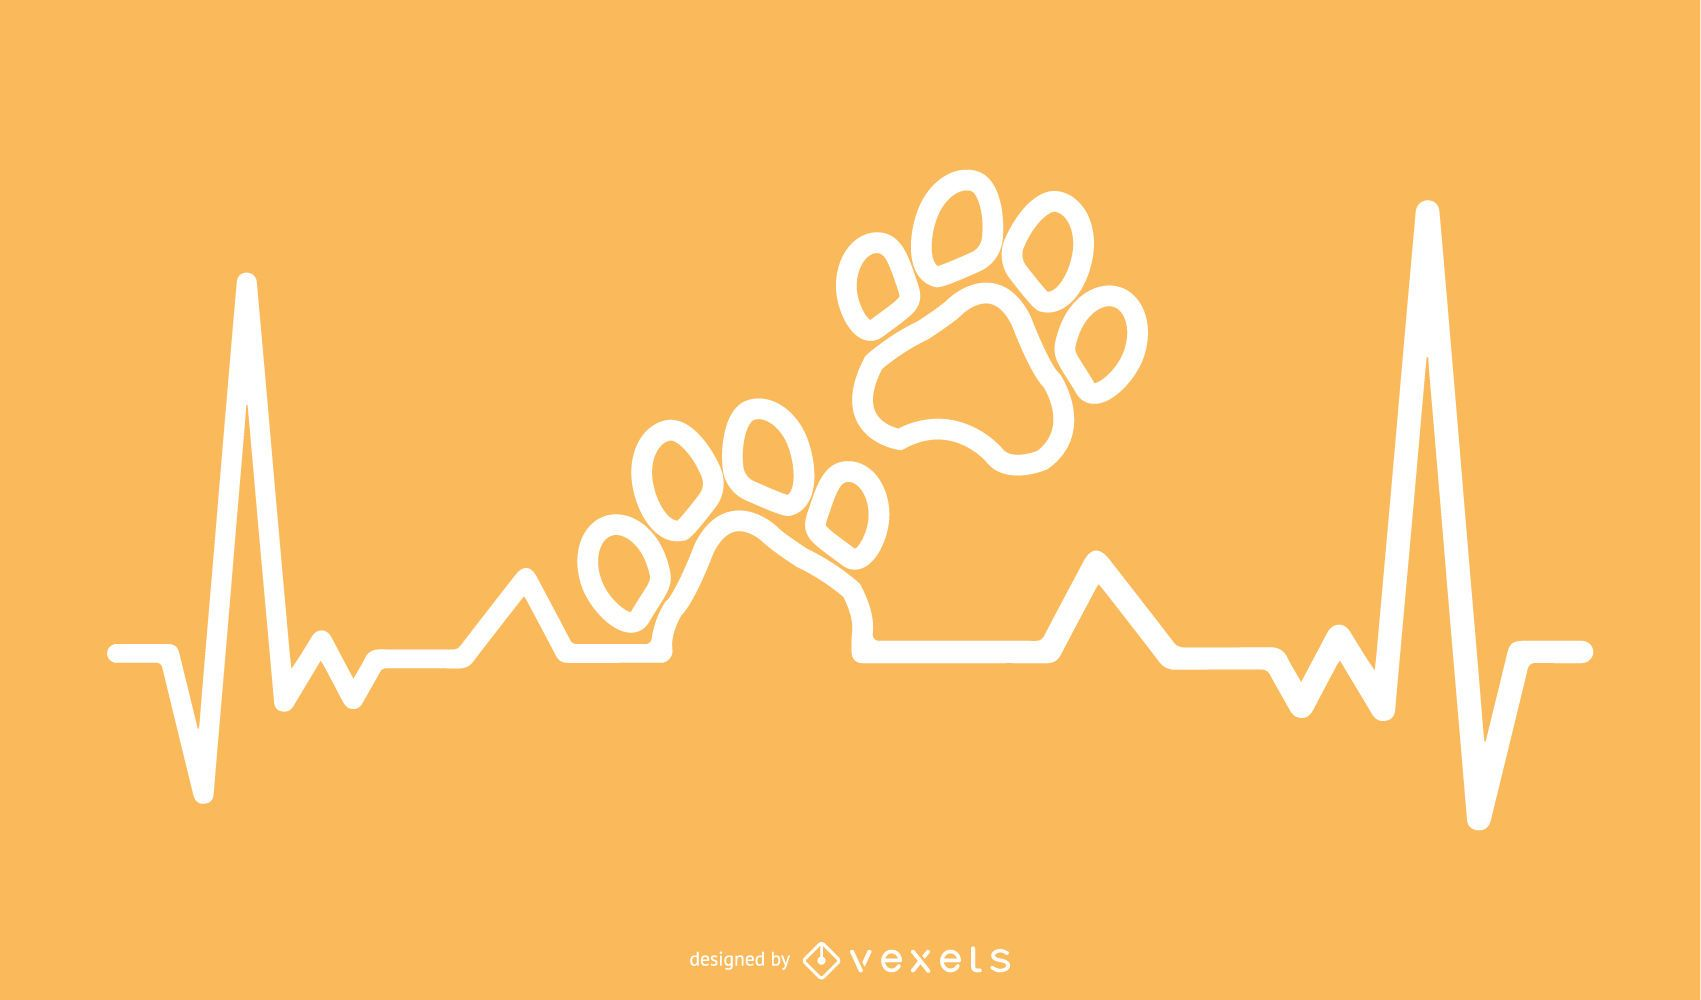 Paw Print with Heartbeat Line Design